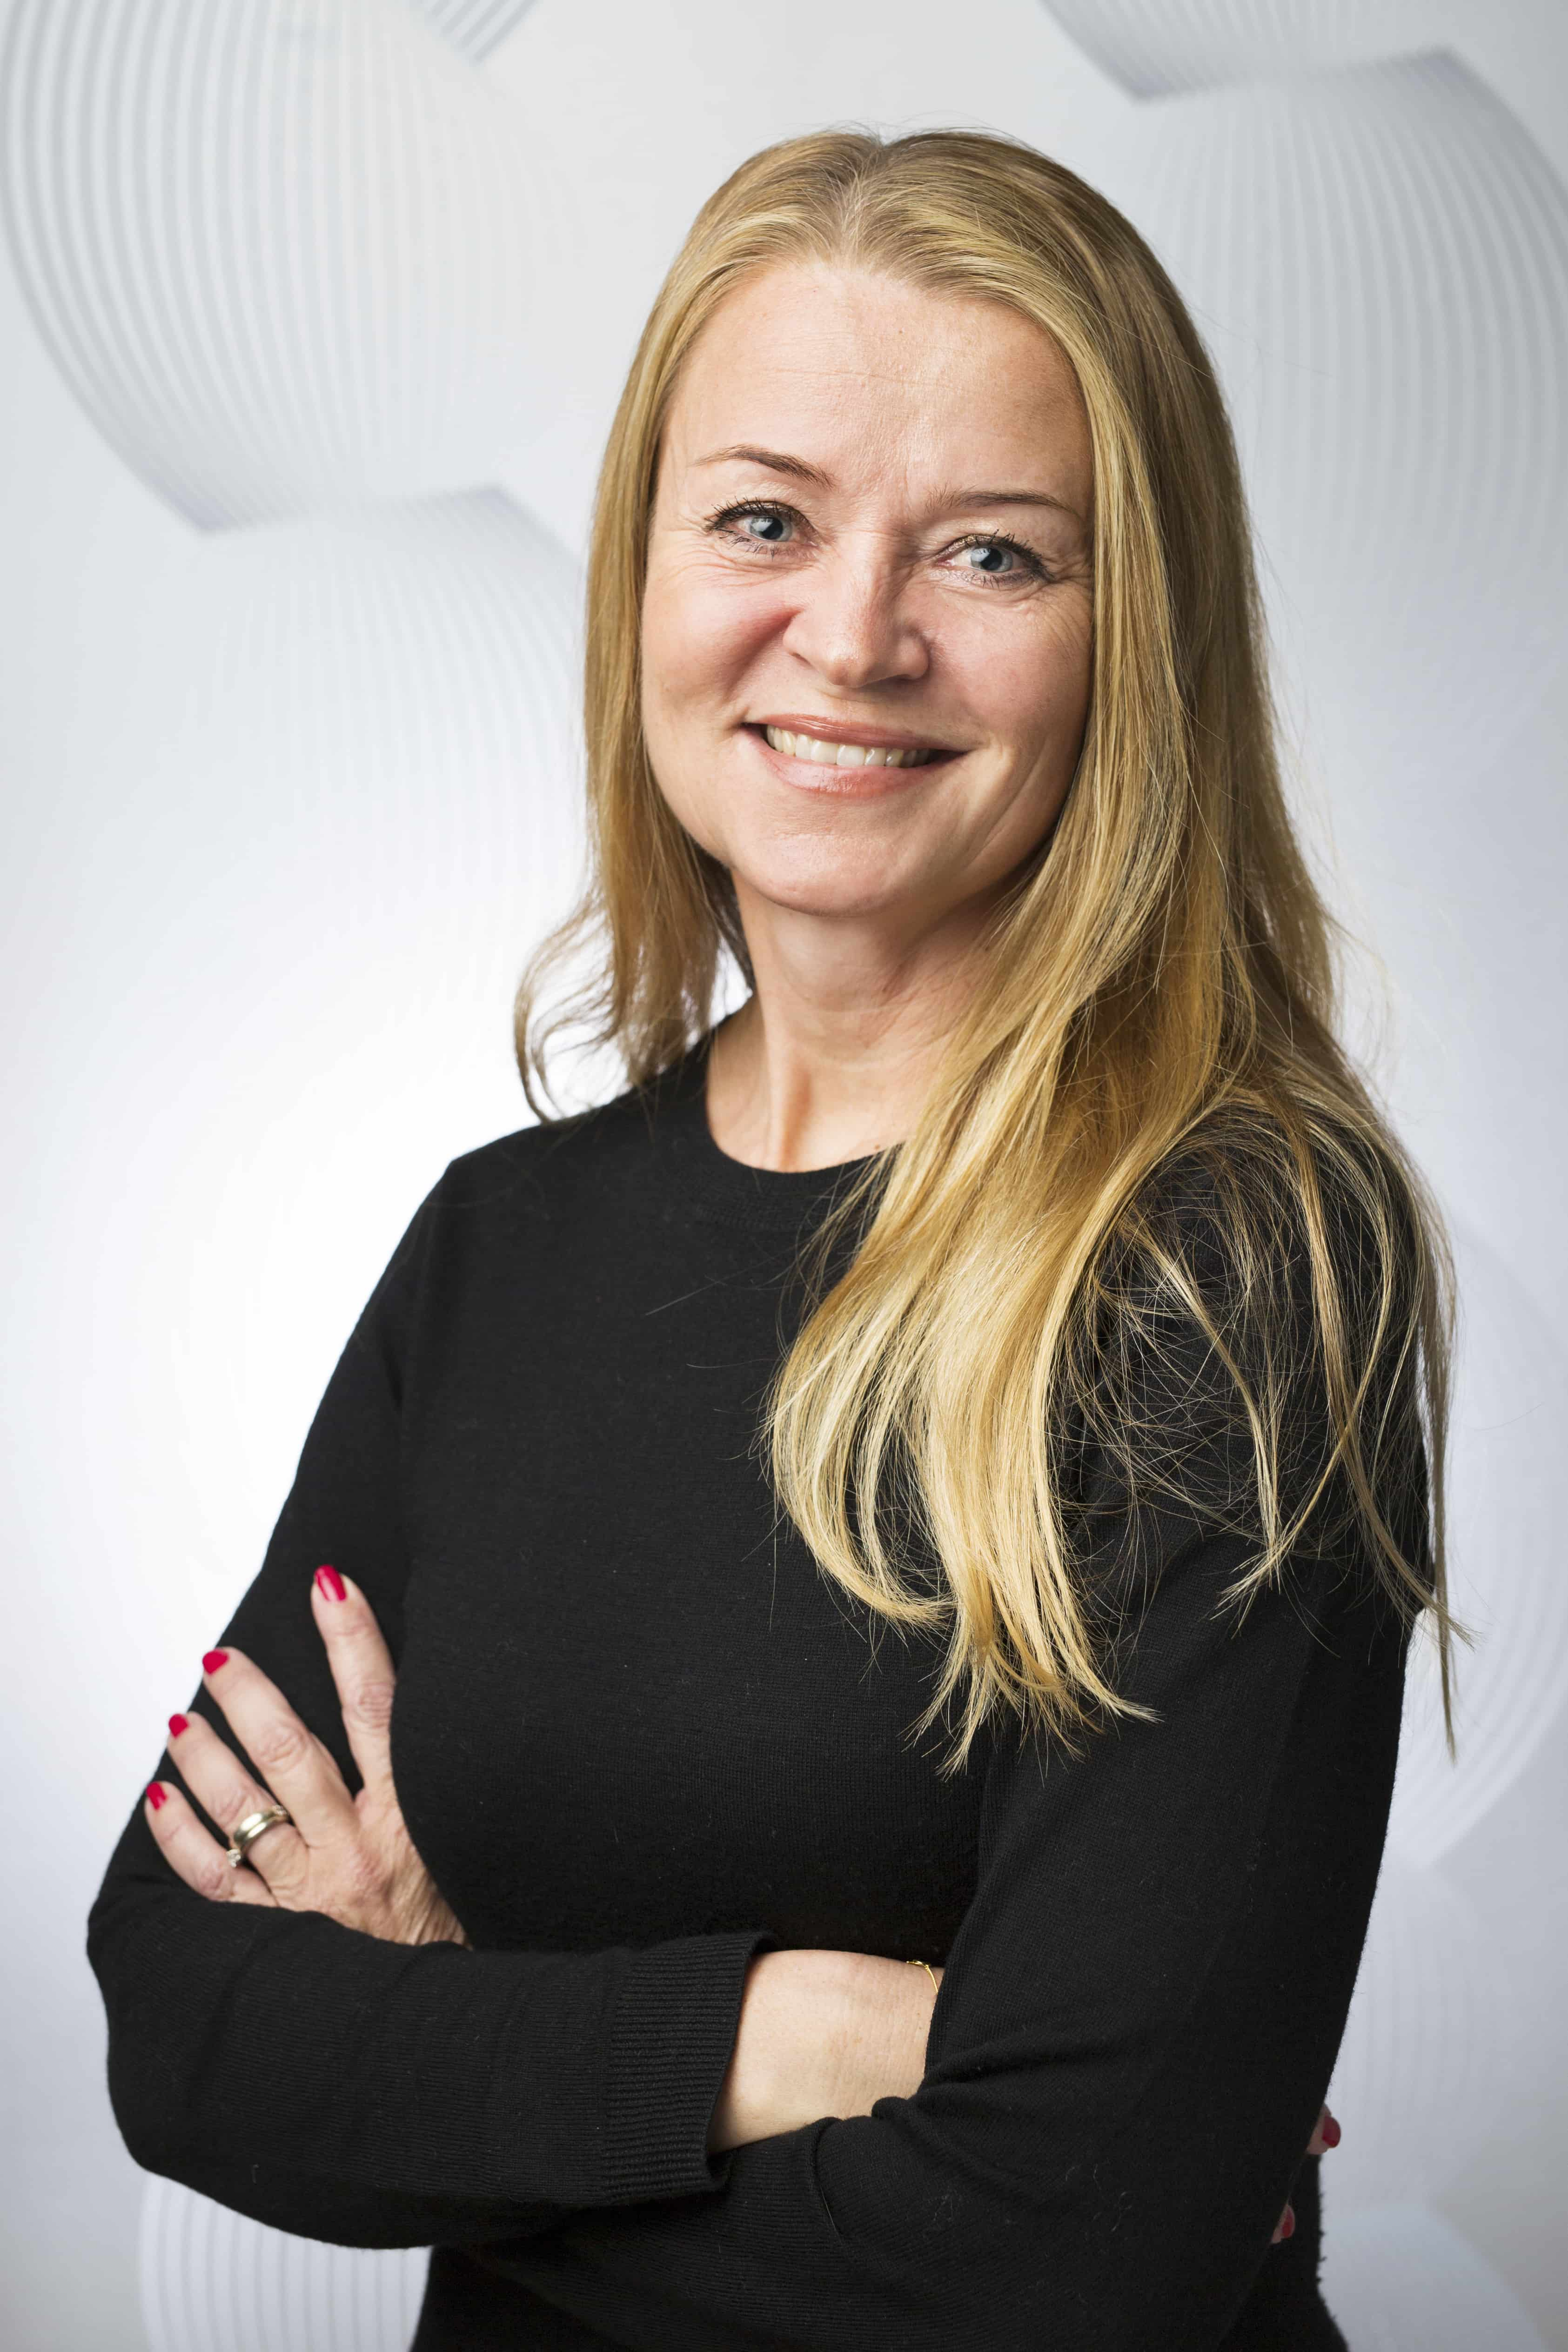 Marte Thorsby, Head of Legal, IFPI Norge AS